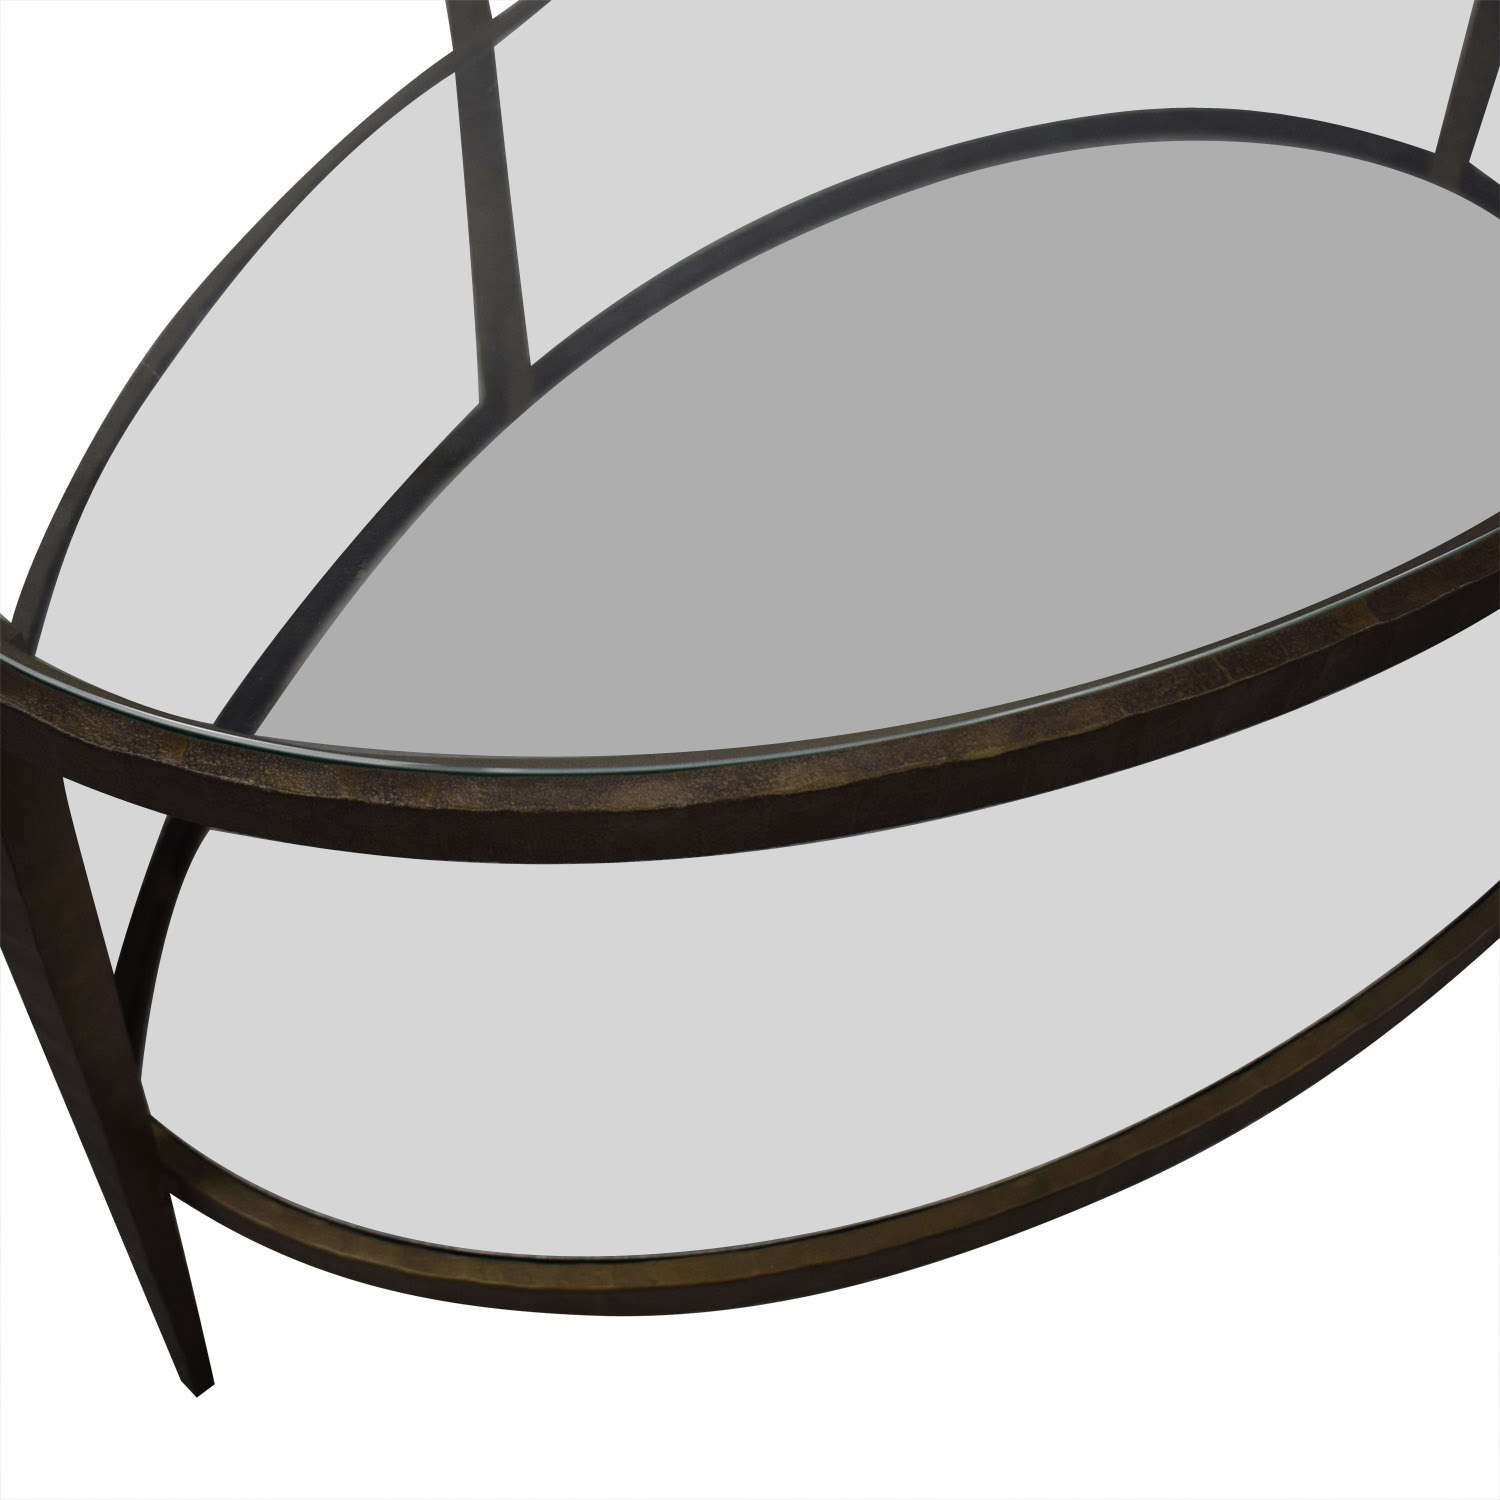 Crate & Barrel Crate & Barrel Clairemont Oval Coffee Table for sale